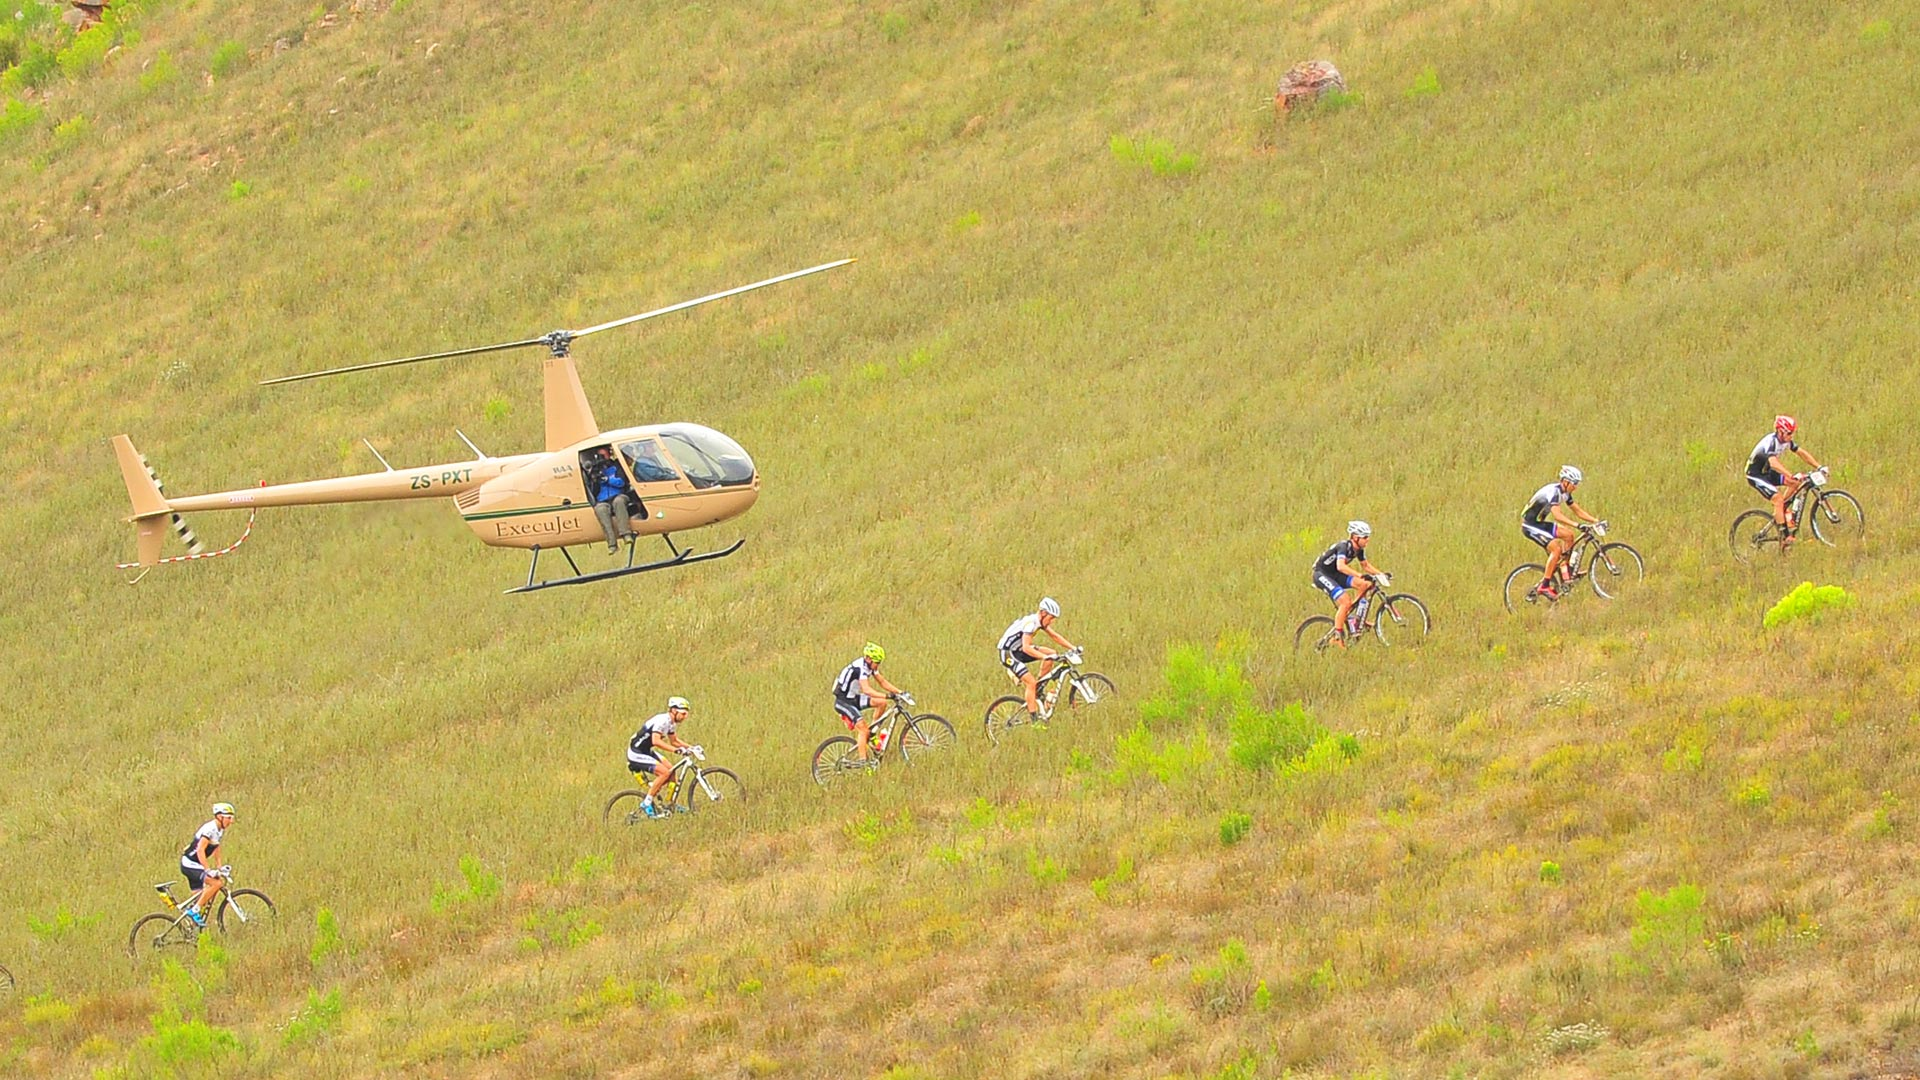 A helicopter with a camera team hovering over a group of mountain bikers who cross grassland